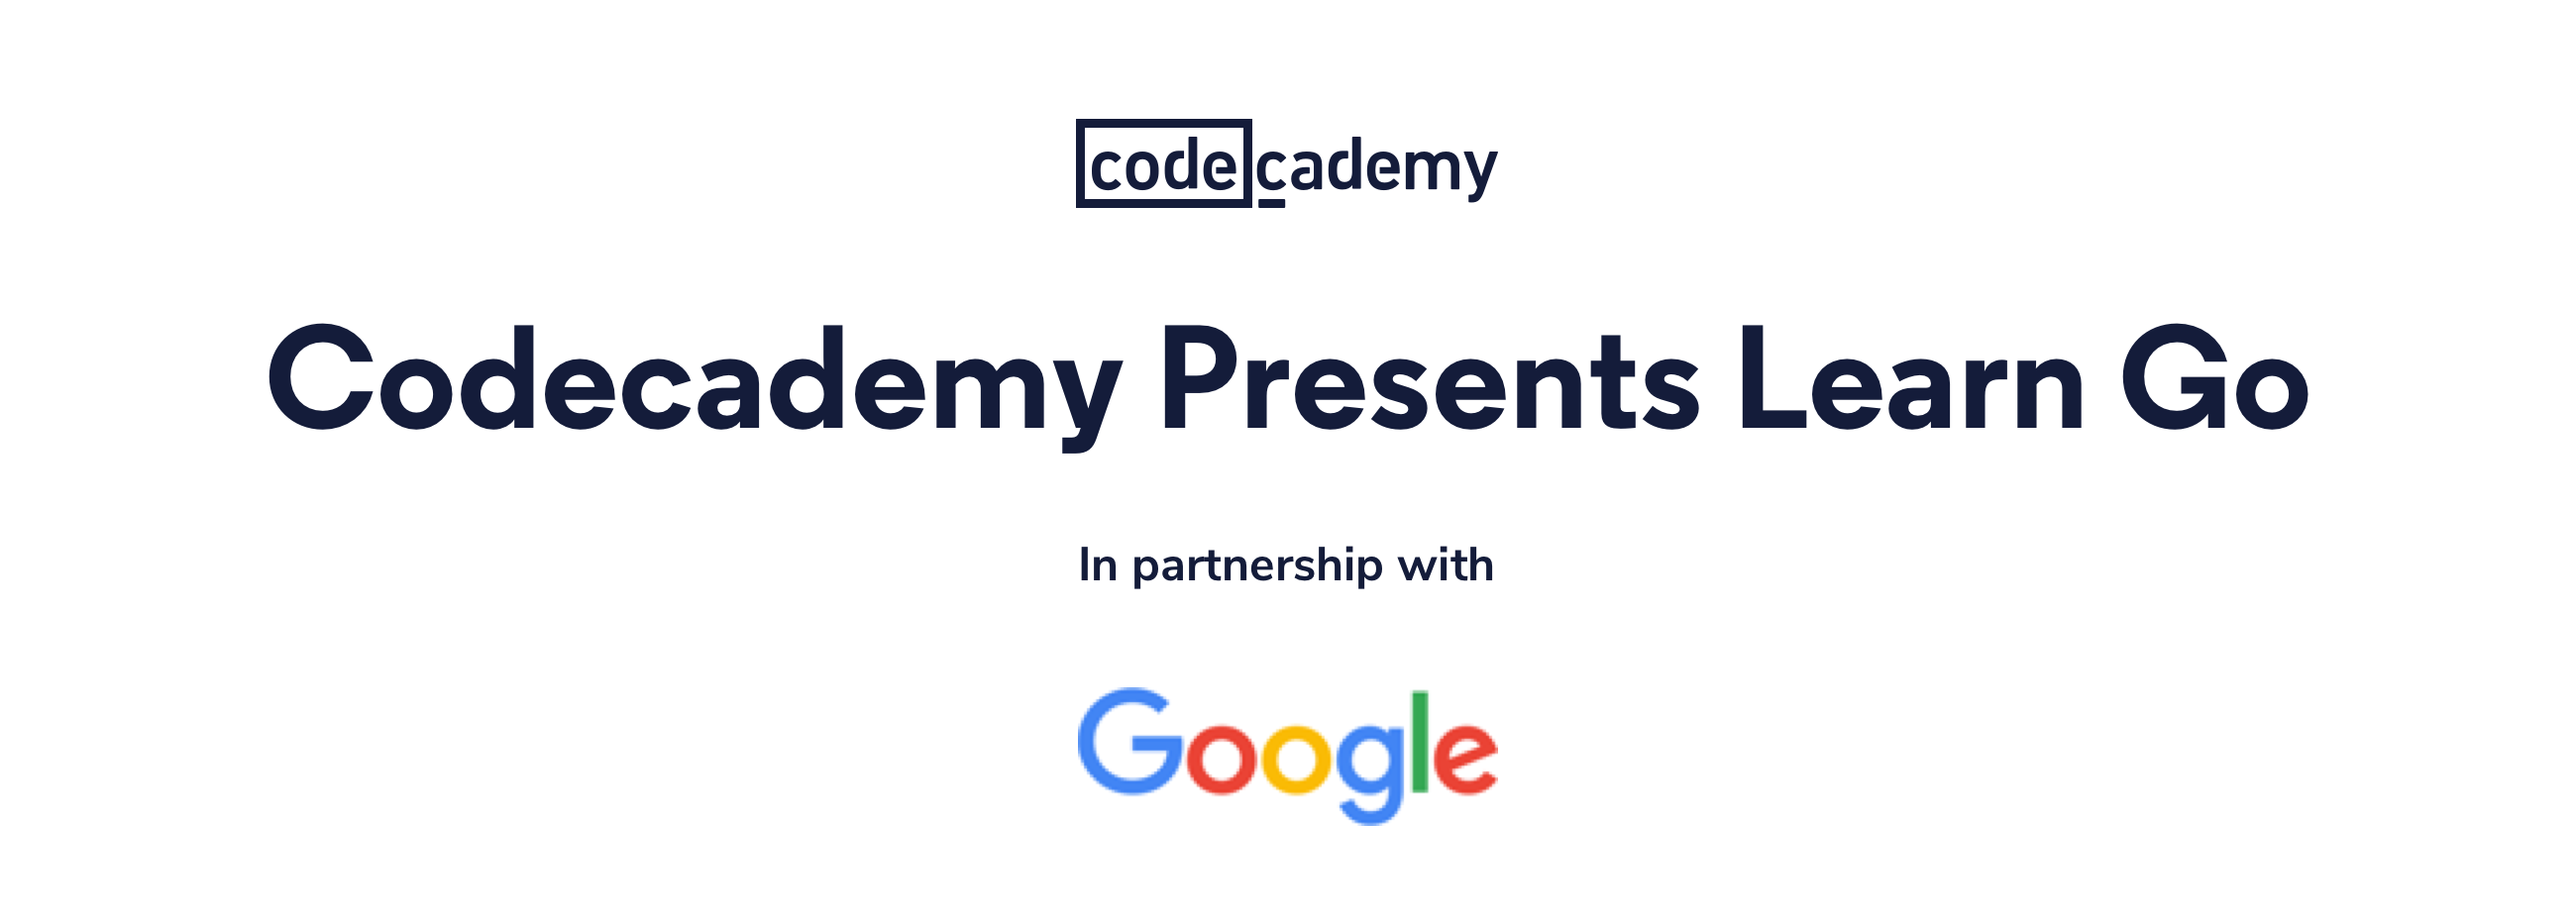 Codeacdemy Presents Learn Go in Partnership with Google